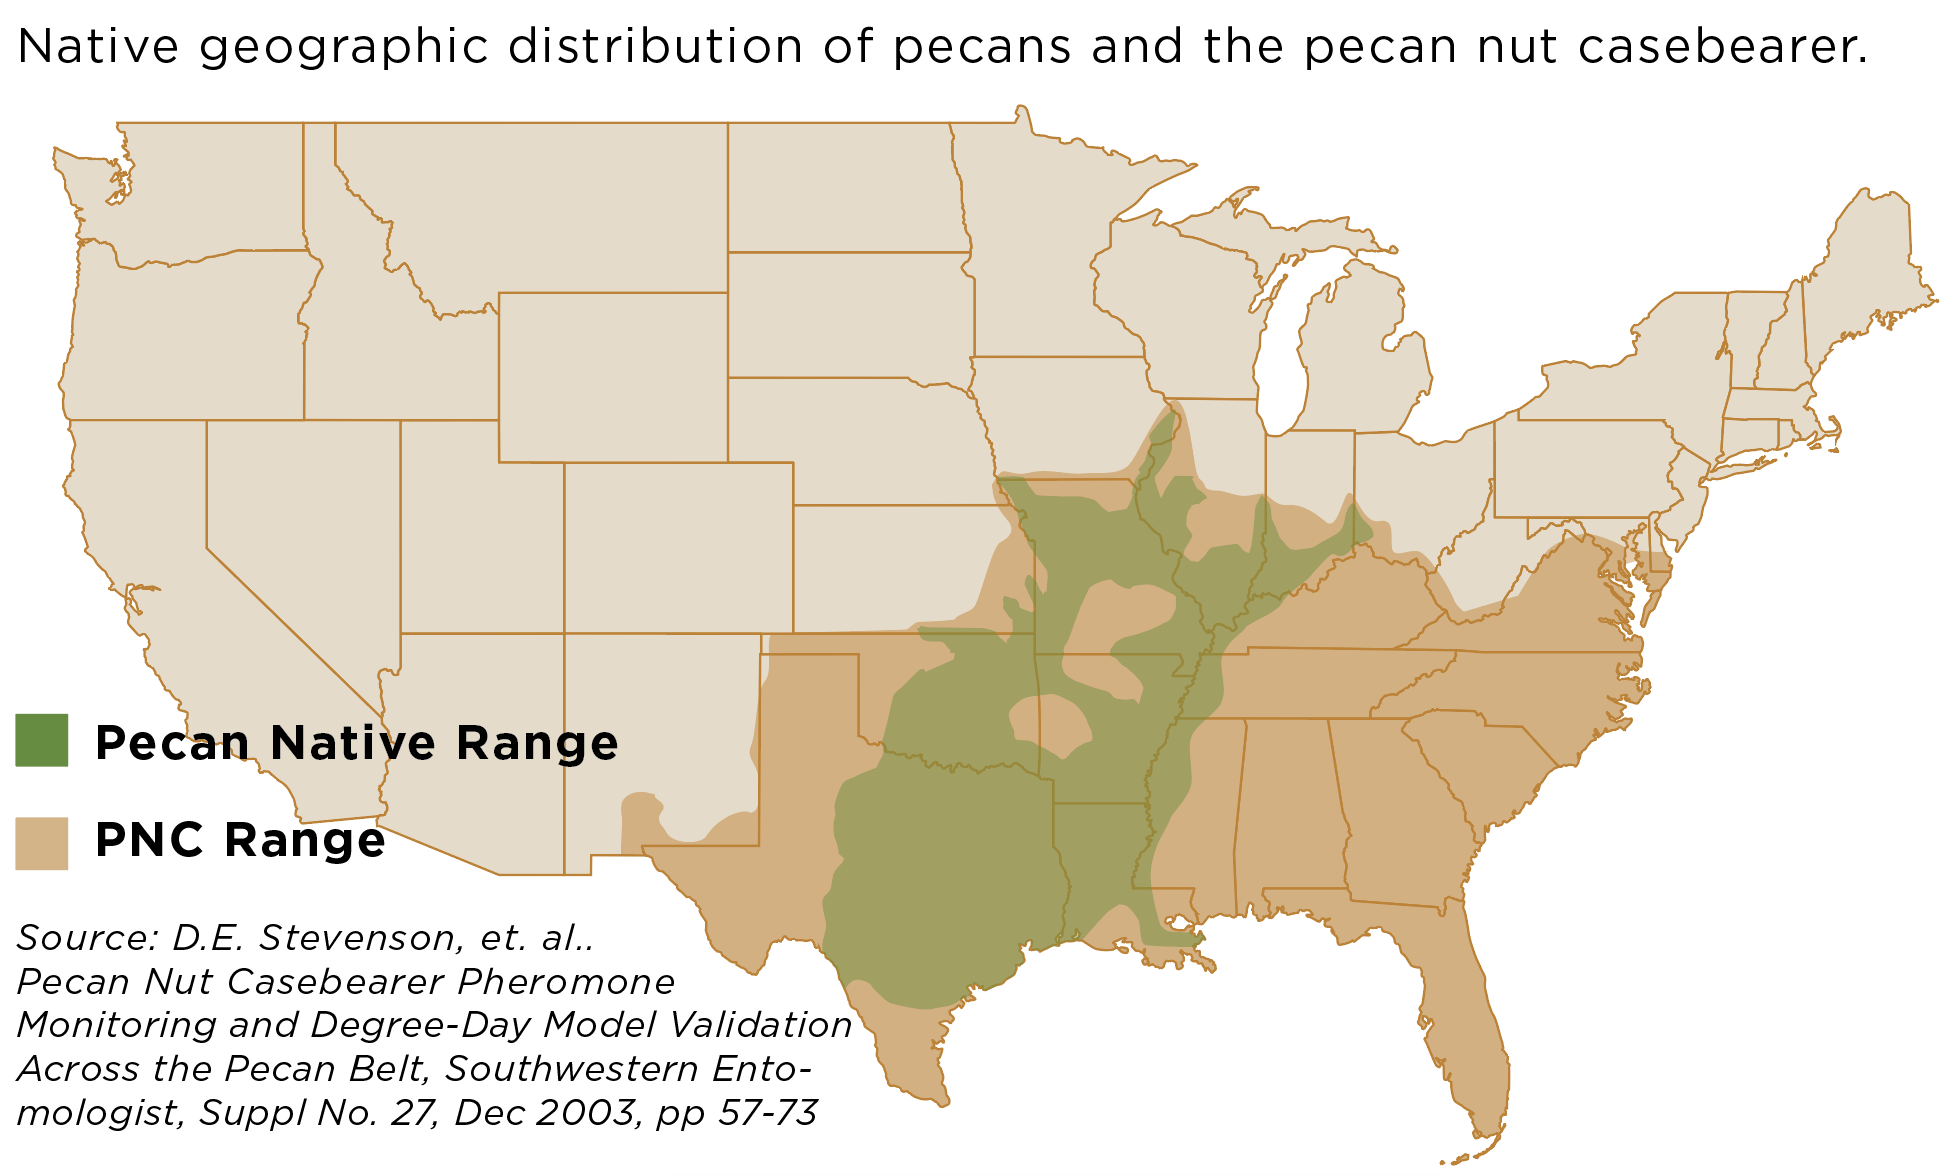 Map: Native geographic distribution of pecans and the pecan nut casebearer.Source: D.E. Stevenson, et. al.. Pecan Nut Casebearer Pheromone Monitoring and Degree-Day Model Validation Across the Pecan Belt, Southwestern Entomologist, Suppl No. 27, Dec 2003, pp 57-73